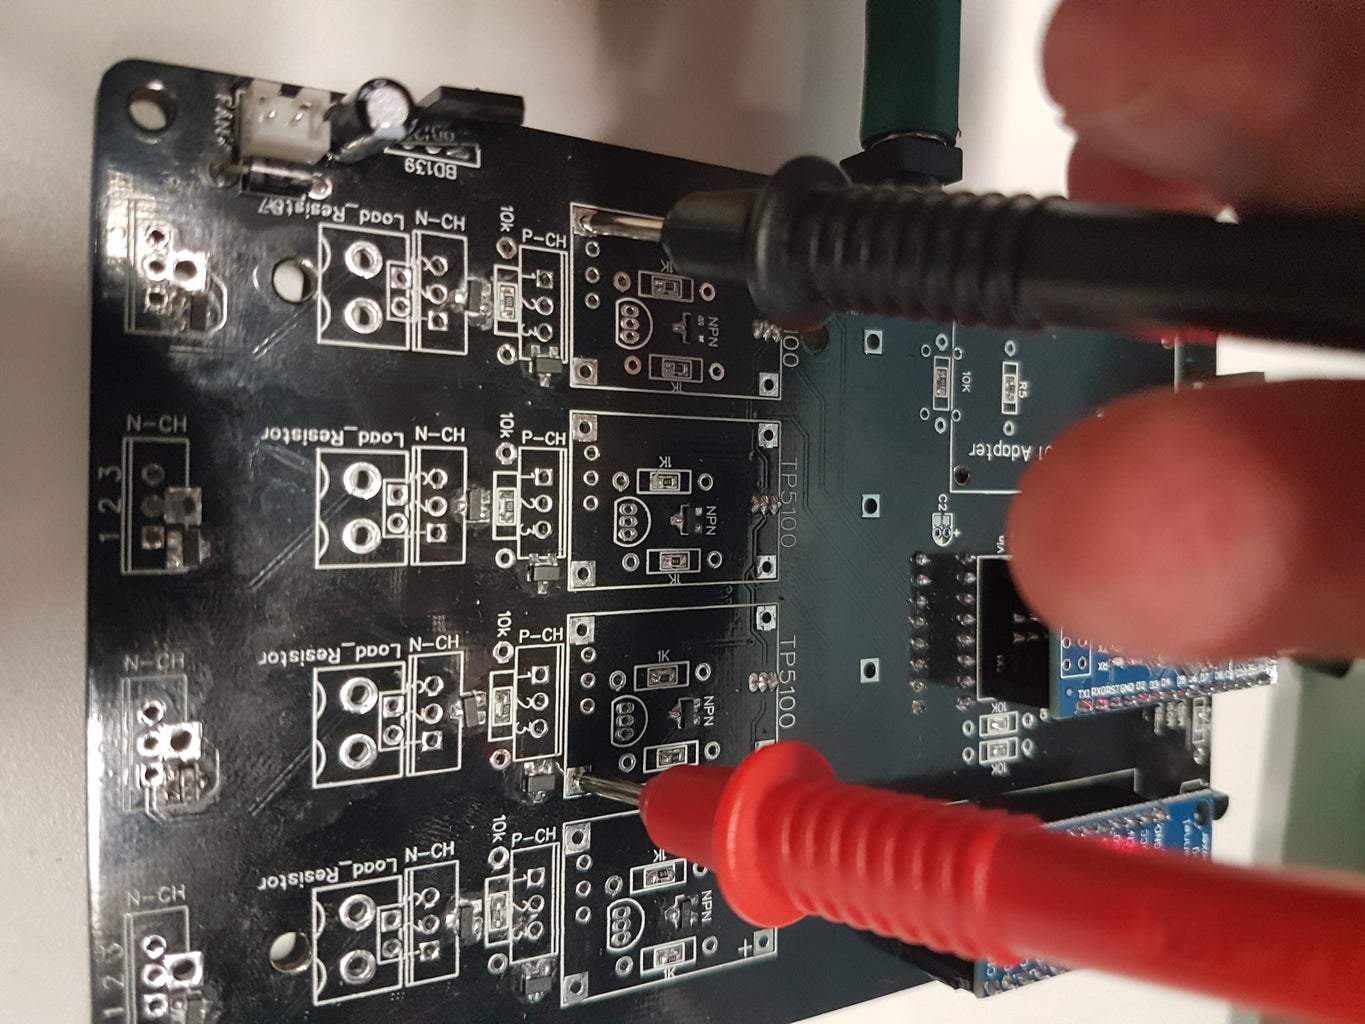 Testing the MOSFETs